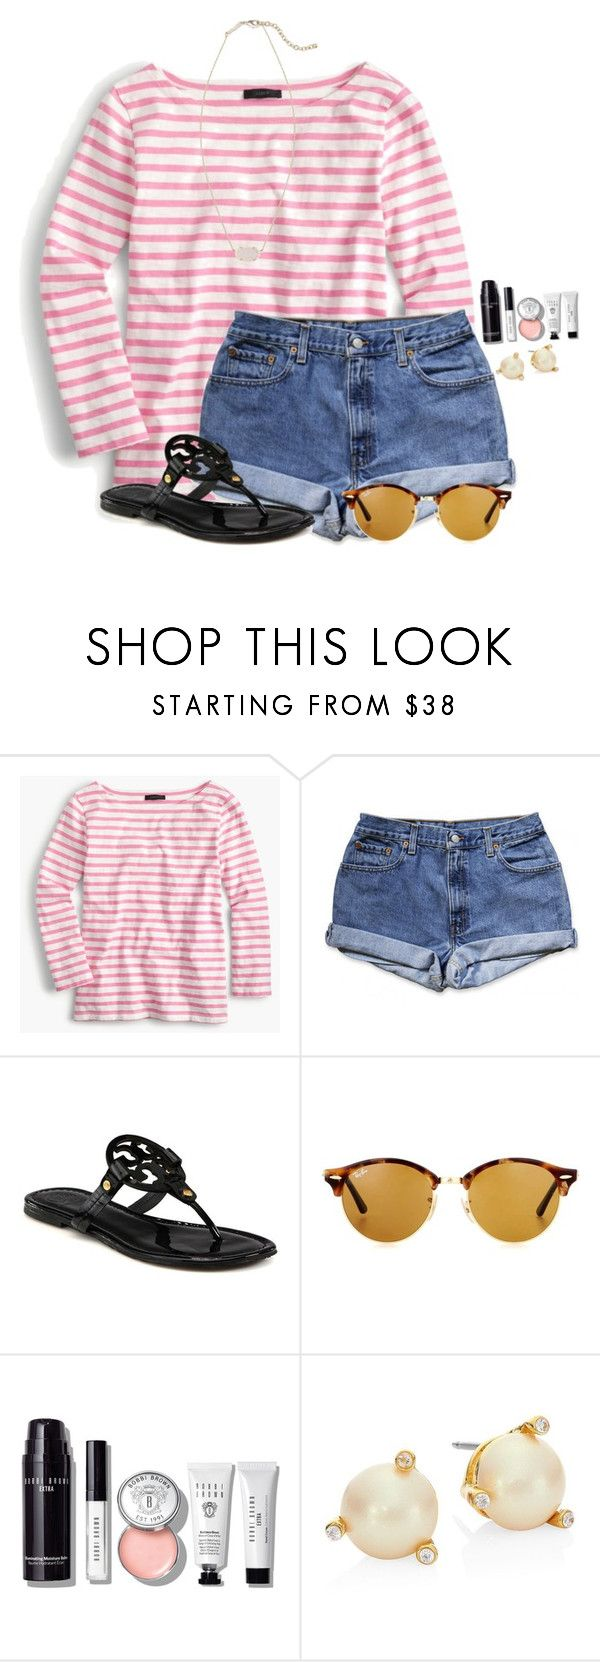 """""""Exact OOTD for errands"""" by flroasburn ❤ liked on Polyvore featuring J.Crew, Tory Burch, Ray-Ban, Bobbi Brown Cosmetics, Kate Spade and Kendra Scott"""